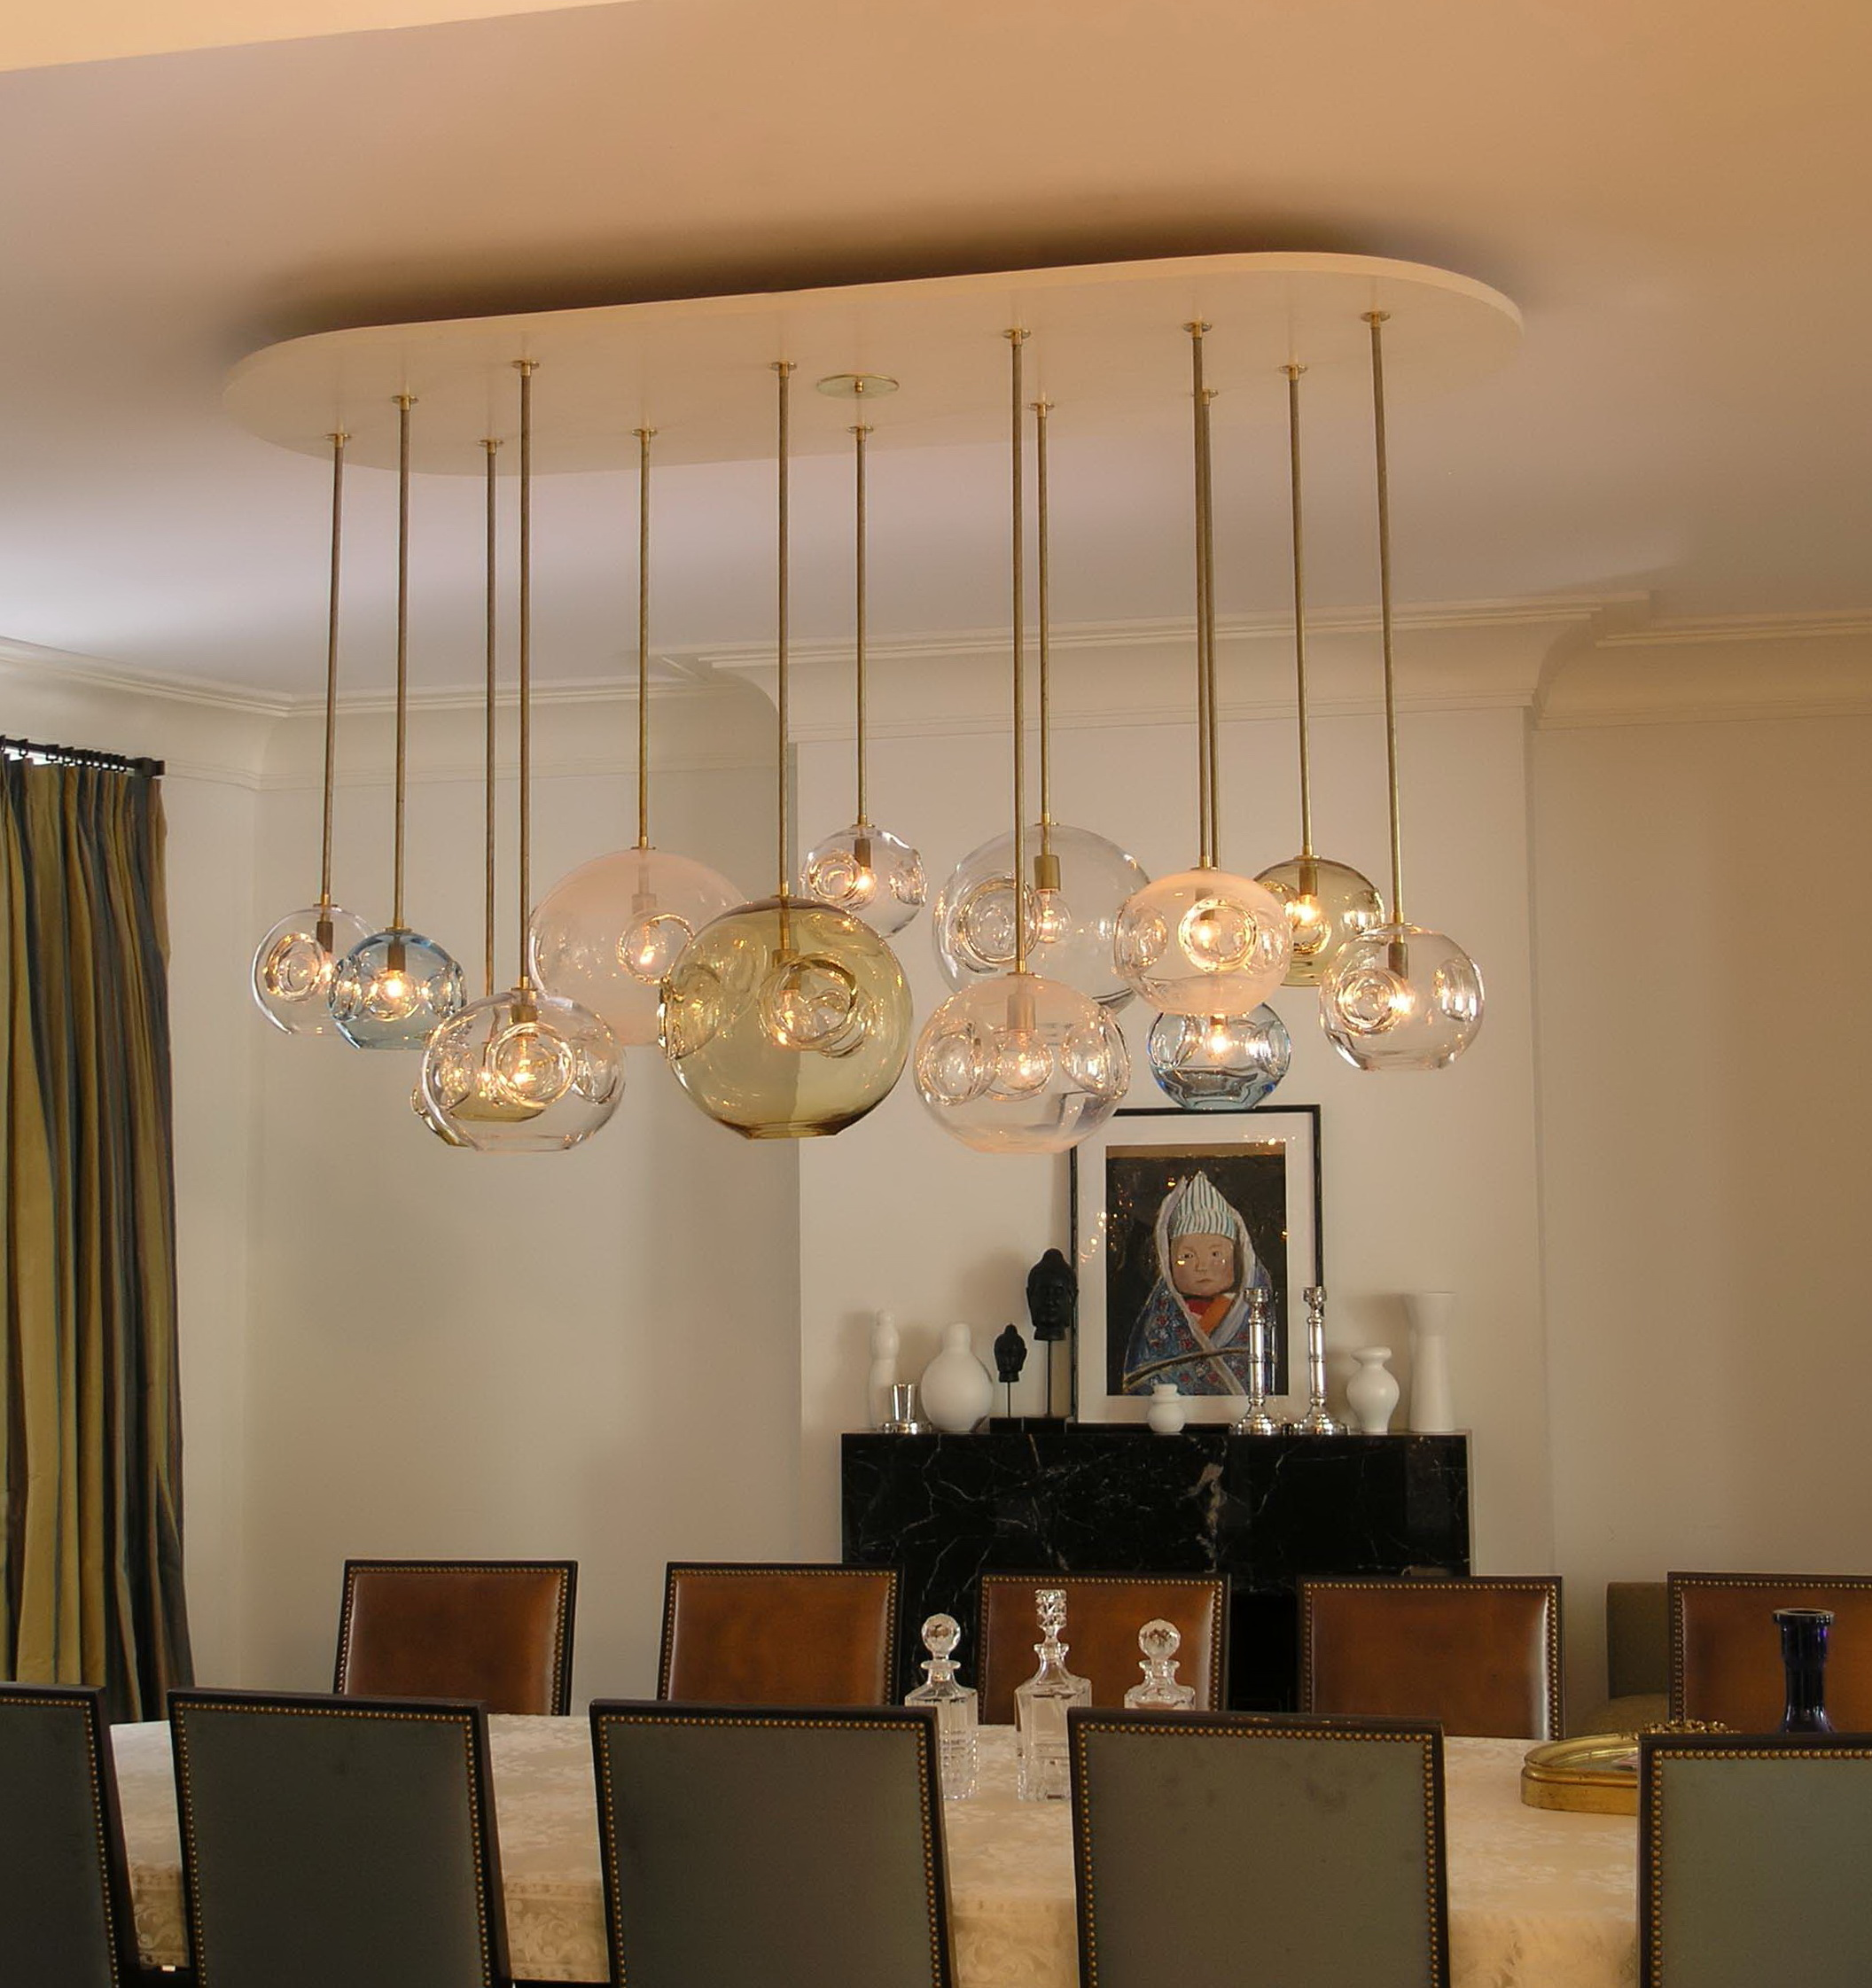 Modern contemporary dining room chandeliers home design ideas - Contemporary chandelier for dining room ...